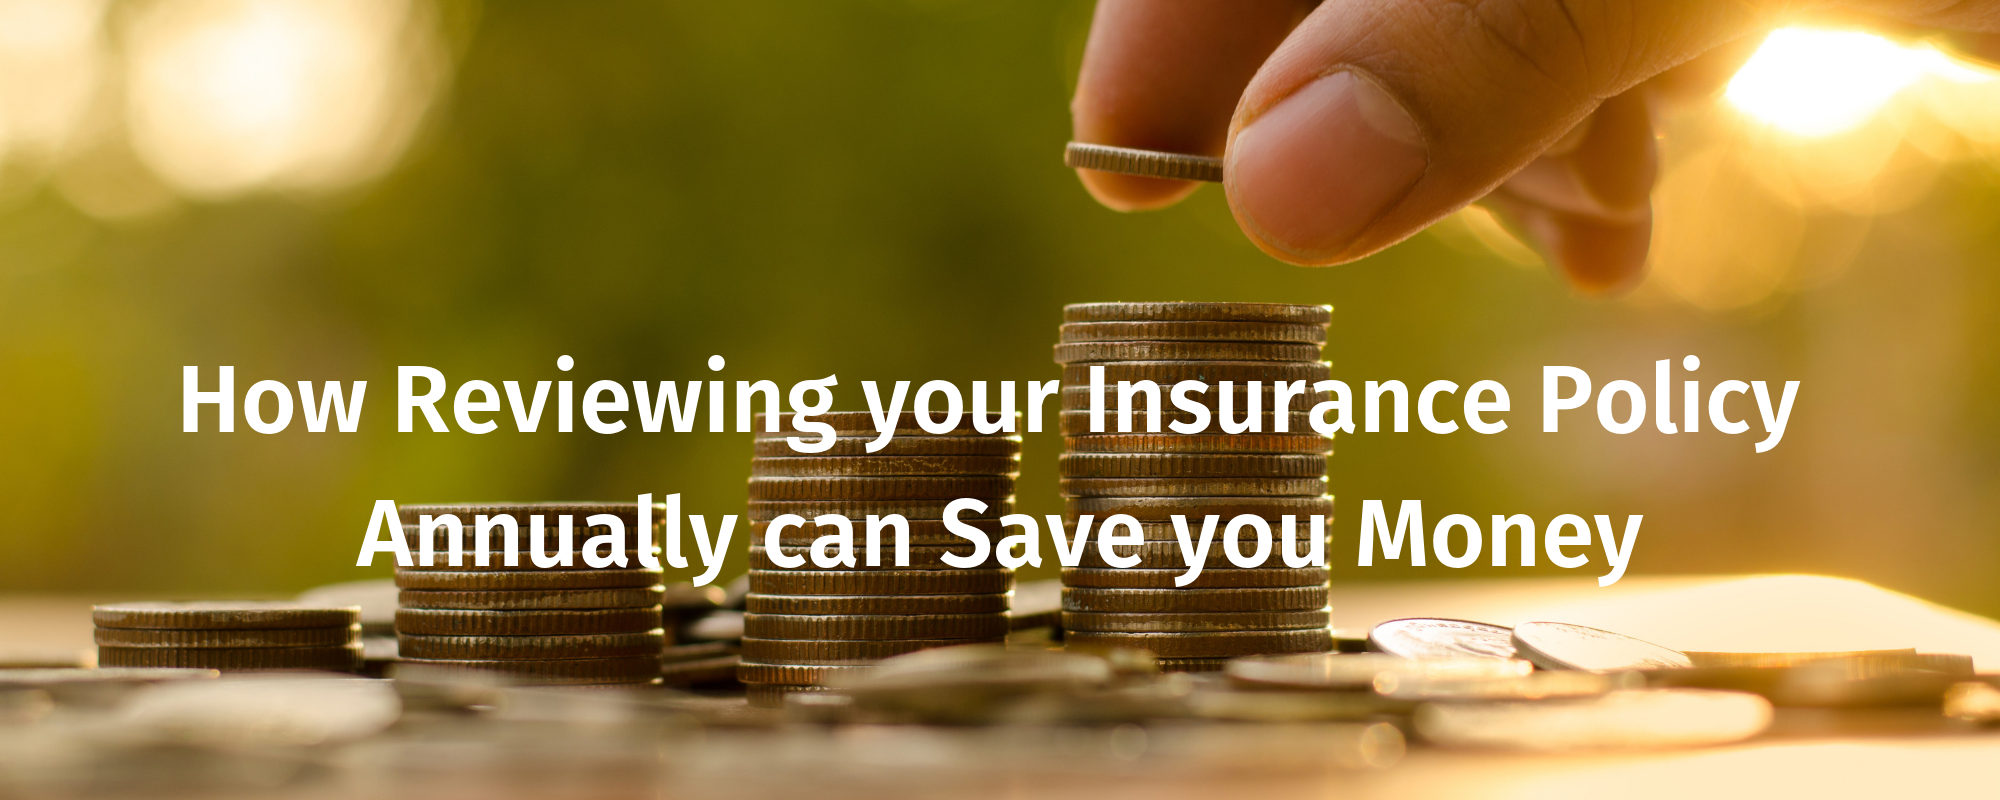 How Reviewing your Insurance Policy Annually can Save you Money